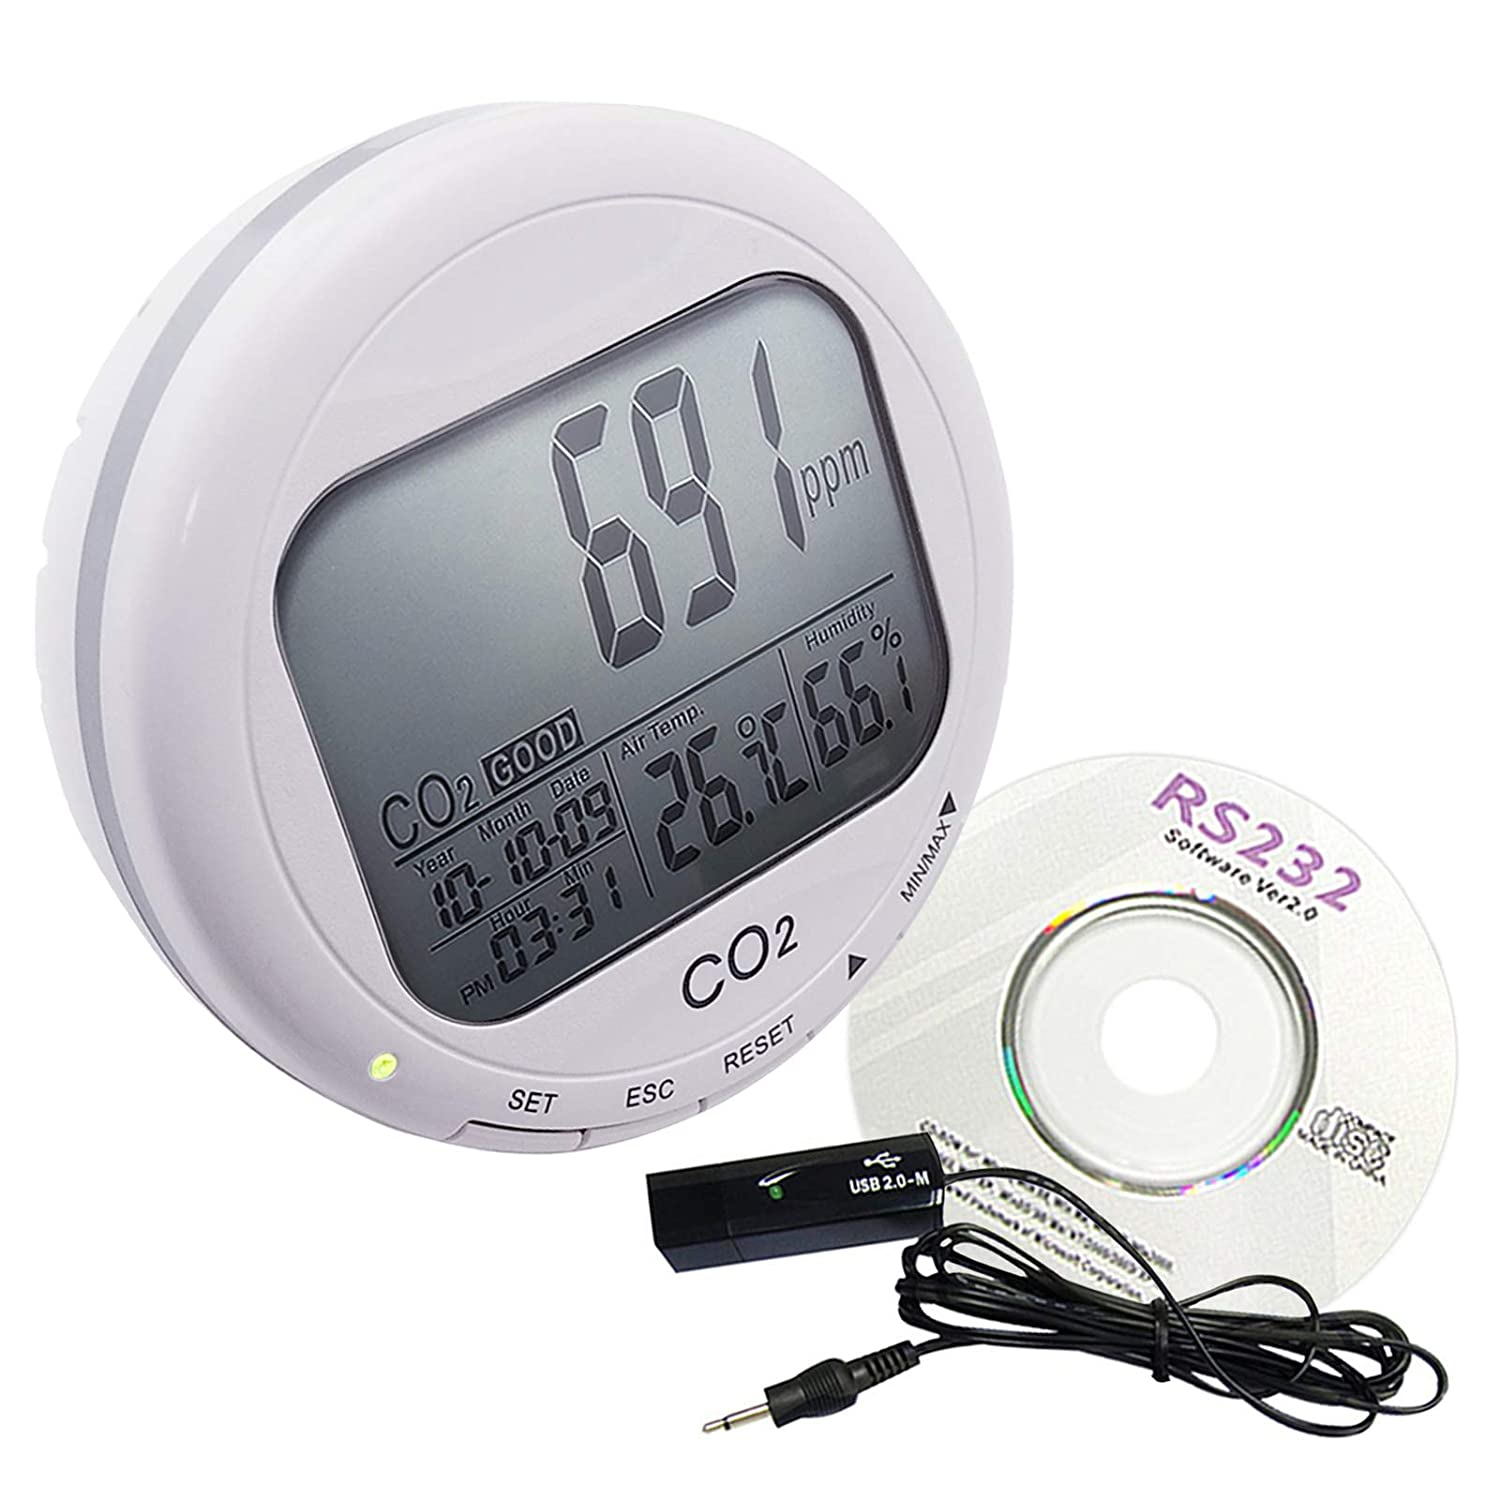 Desktop CO2/RH/Temp 3 in 1 Monitor with Data Logger Logging, Indoor Air Quality 9999 ppm Carbon Dioxide/Temperature Deg C/F/Humidity Meter, Adjustable Audible Alarm Gain Express holdings Ltd. CO98